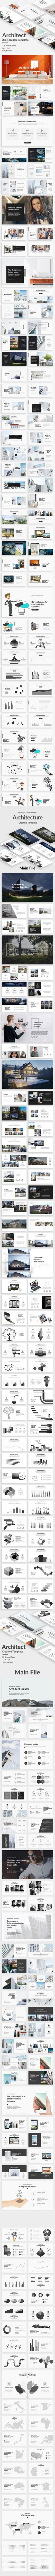 Architecture Bundle 3 in 1 Keynote Template — Keynote KEY #creative #GS • Available here ➝ https://graphicriver.net/item/architecture-bundle-3-in-1-keynote-template/20612539?ref=pxcr